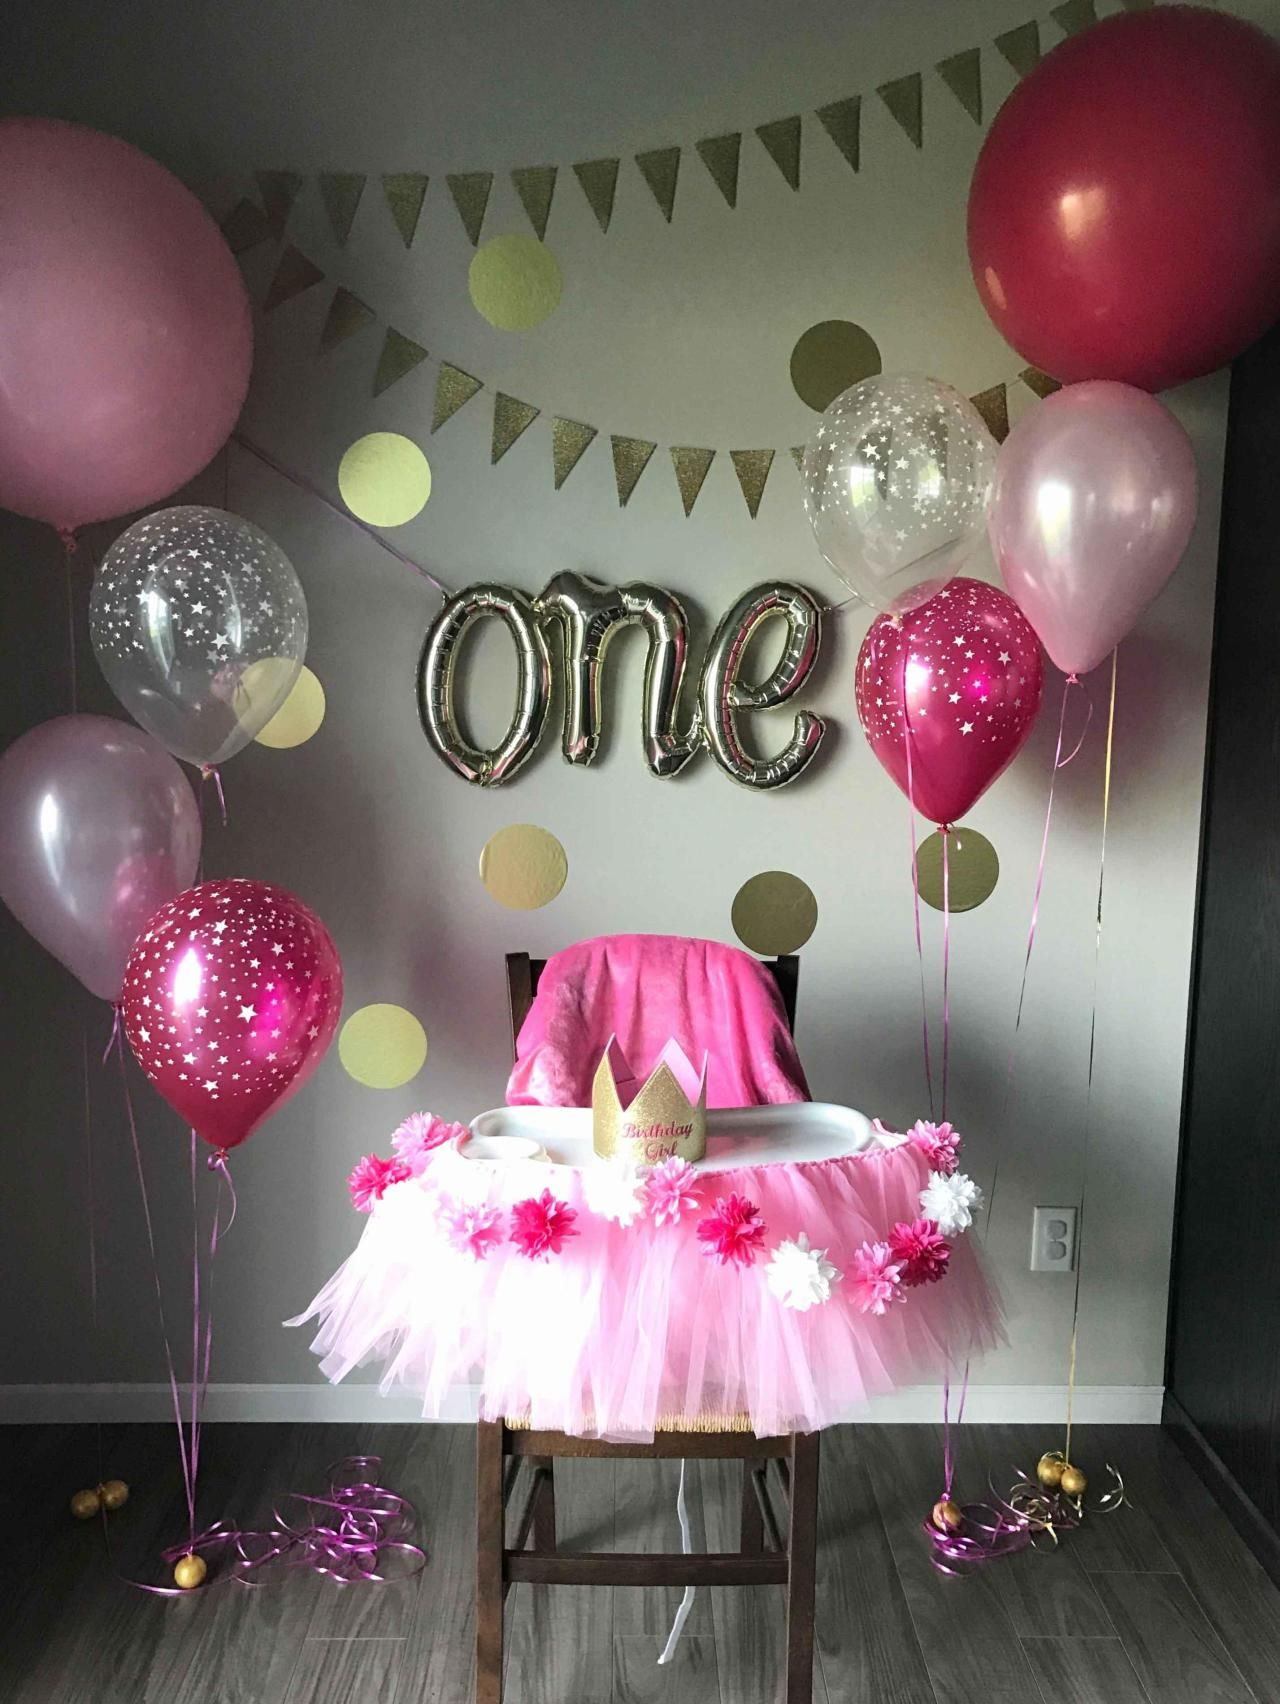 Girls Birthday Party Themes Unique Evergreen Stylish Decoration Idea For One Year Old Boy Or Girl